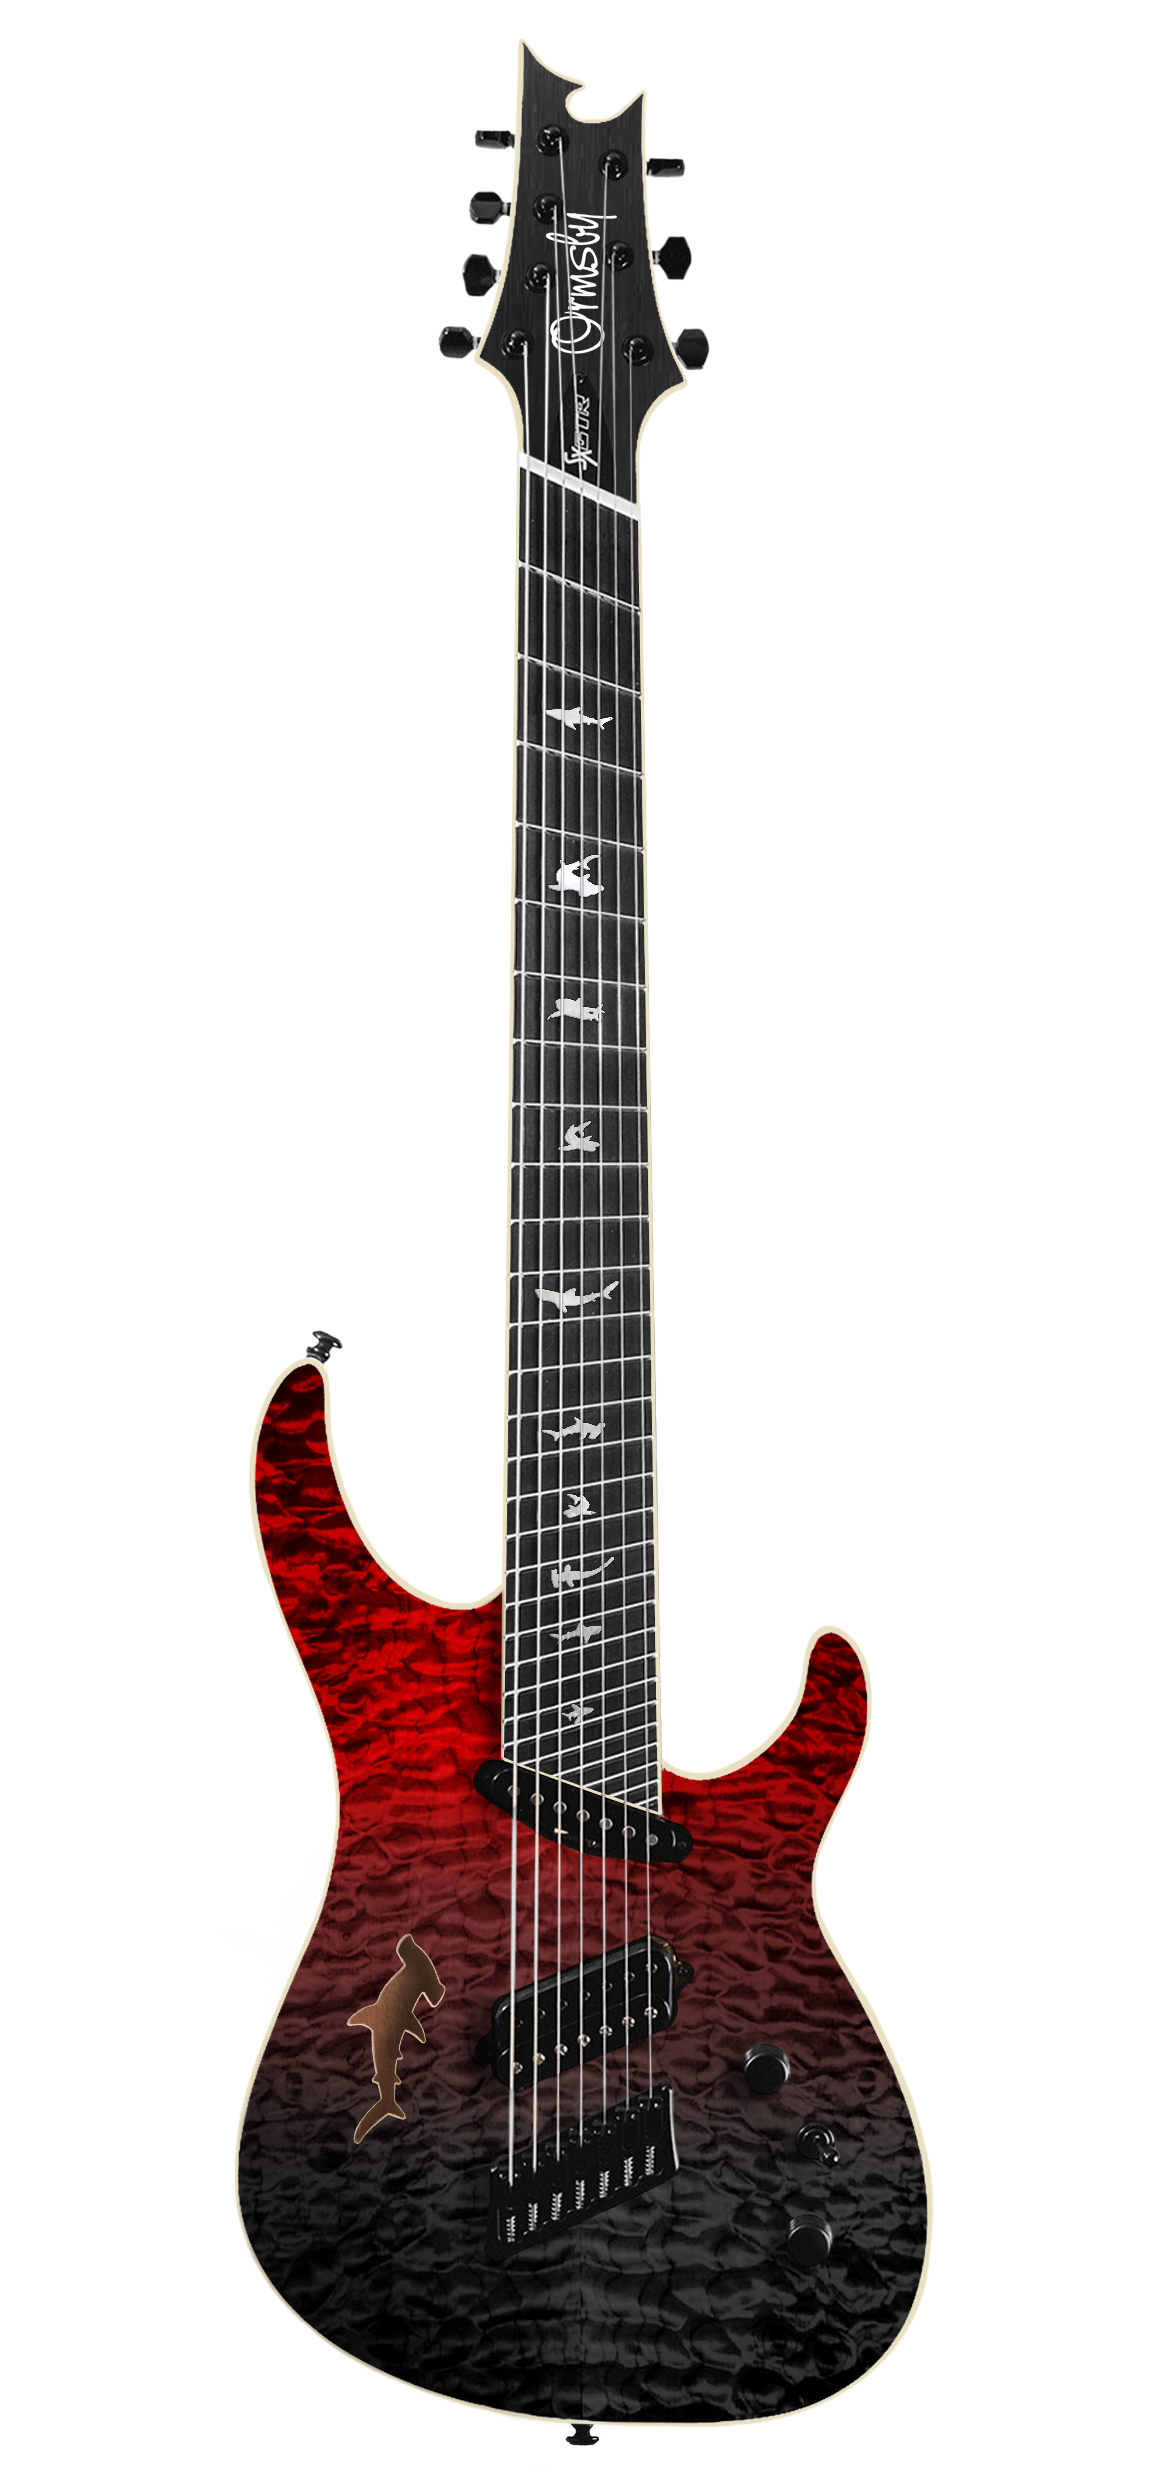 SX Shark GTR Limited Edition 2017 - Blood Bath (6, 7 & 8 String)